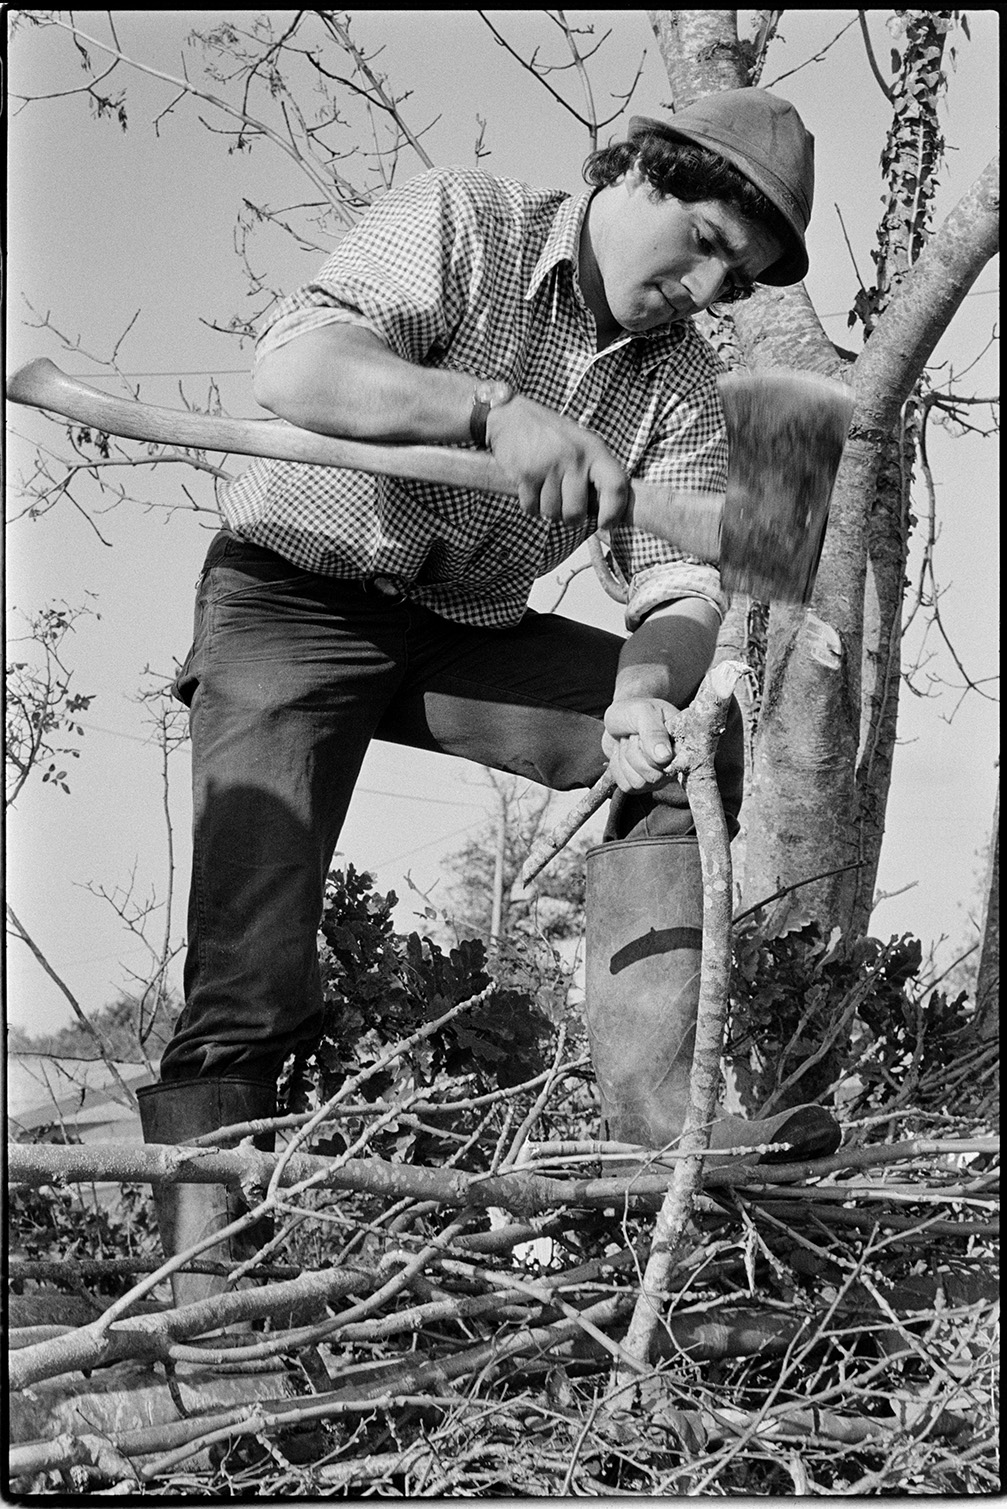 Man hammering wooden cruck into place using axe-head – Stephen Squire, Dolton, Lower Langham, October 1978. Documentary photograph by James Ravilious for the Beaford Archive © Beaford Arts